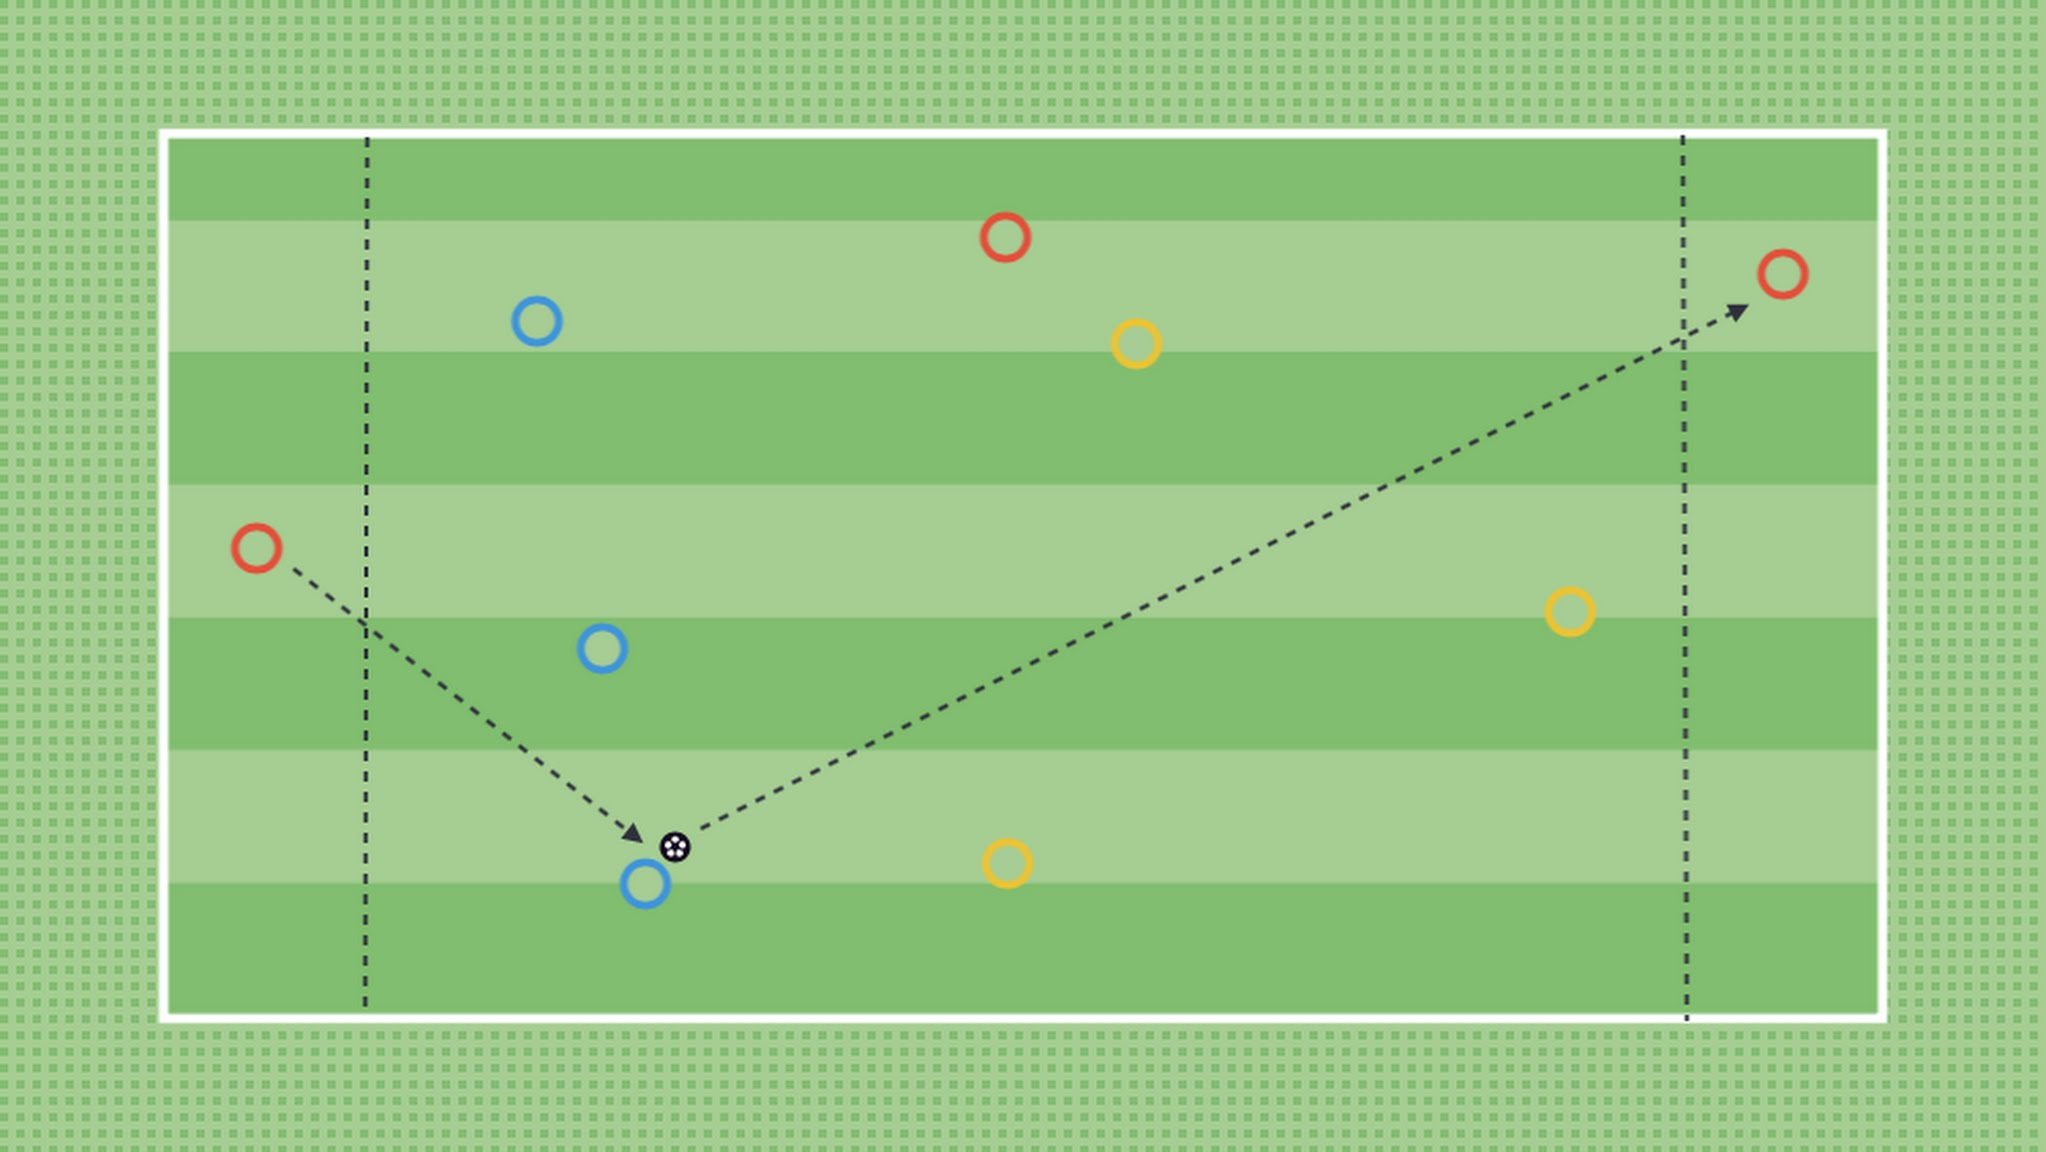 """The above game has two target players and a neutral for the team in possession. Player's will find themselves in scenarios where they can try and """"Receive to Turn"""" (the session topic) and play forwards."""